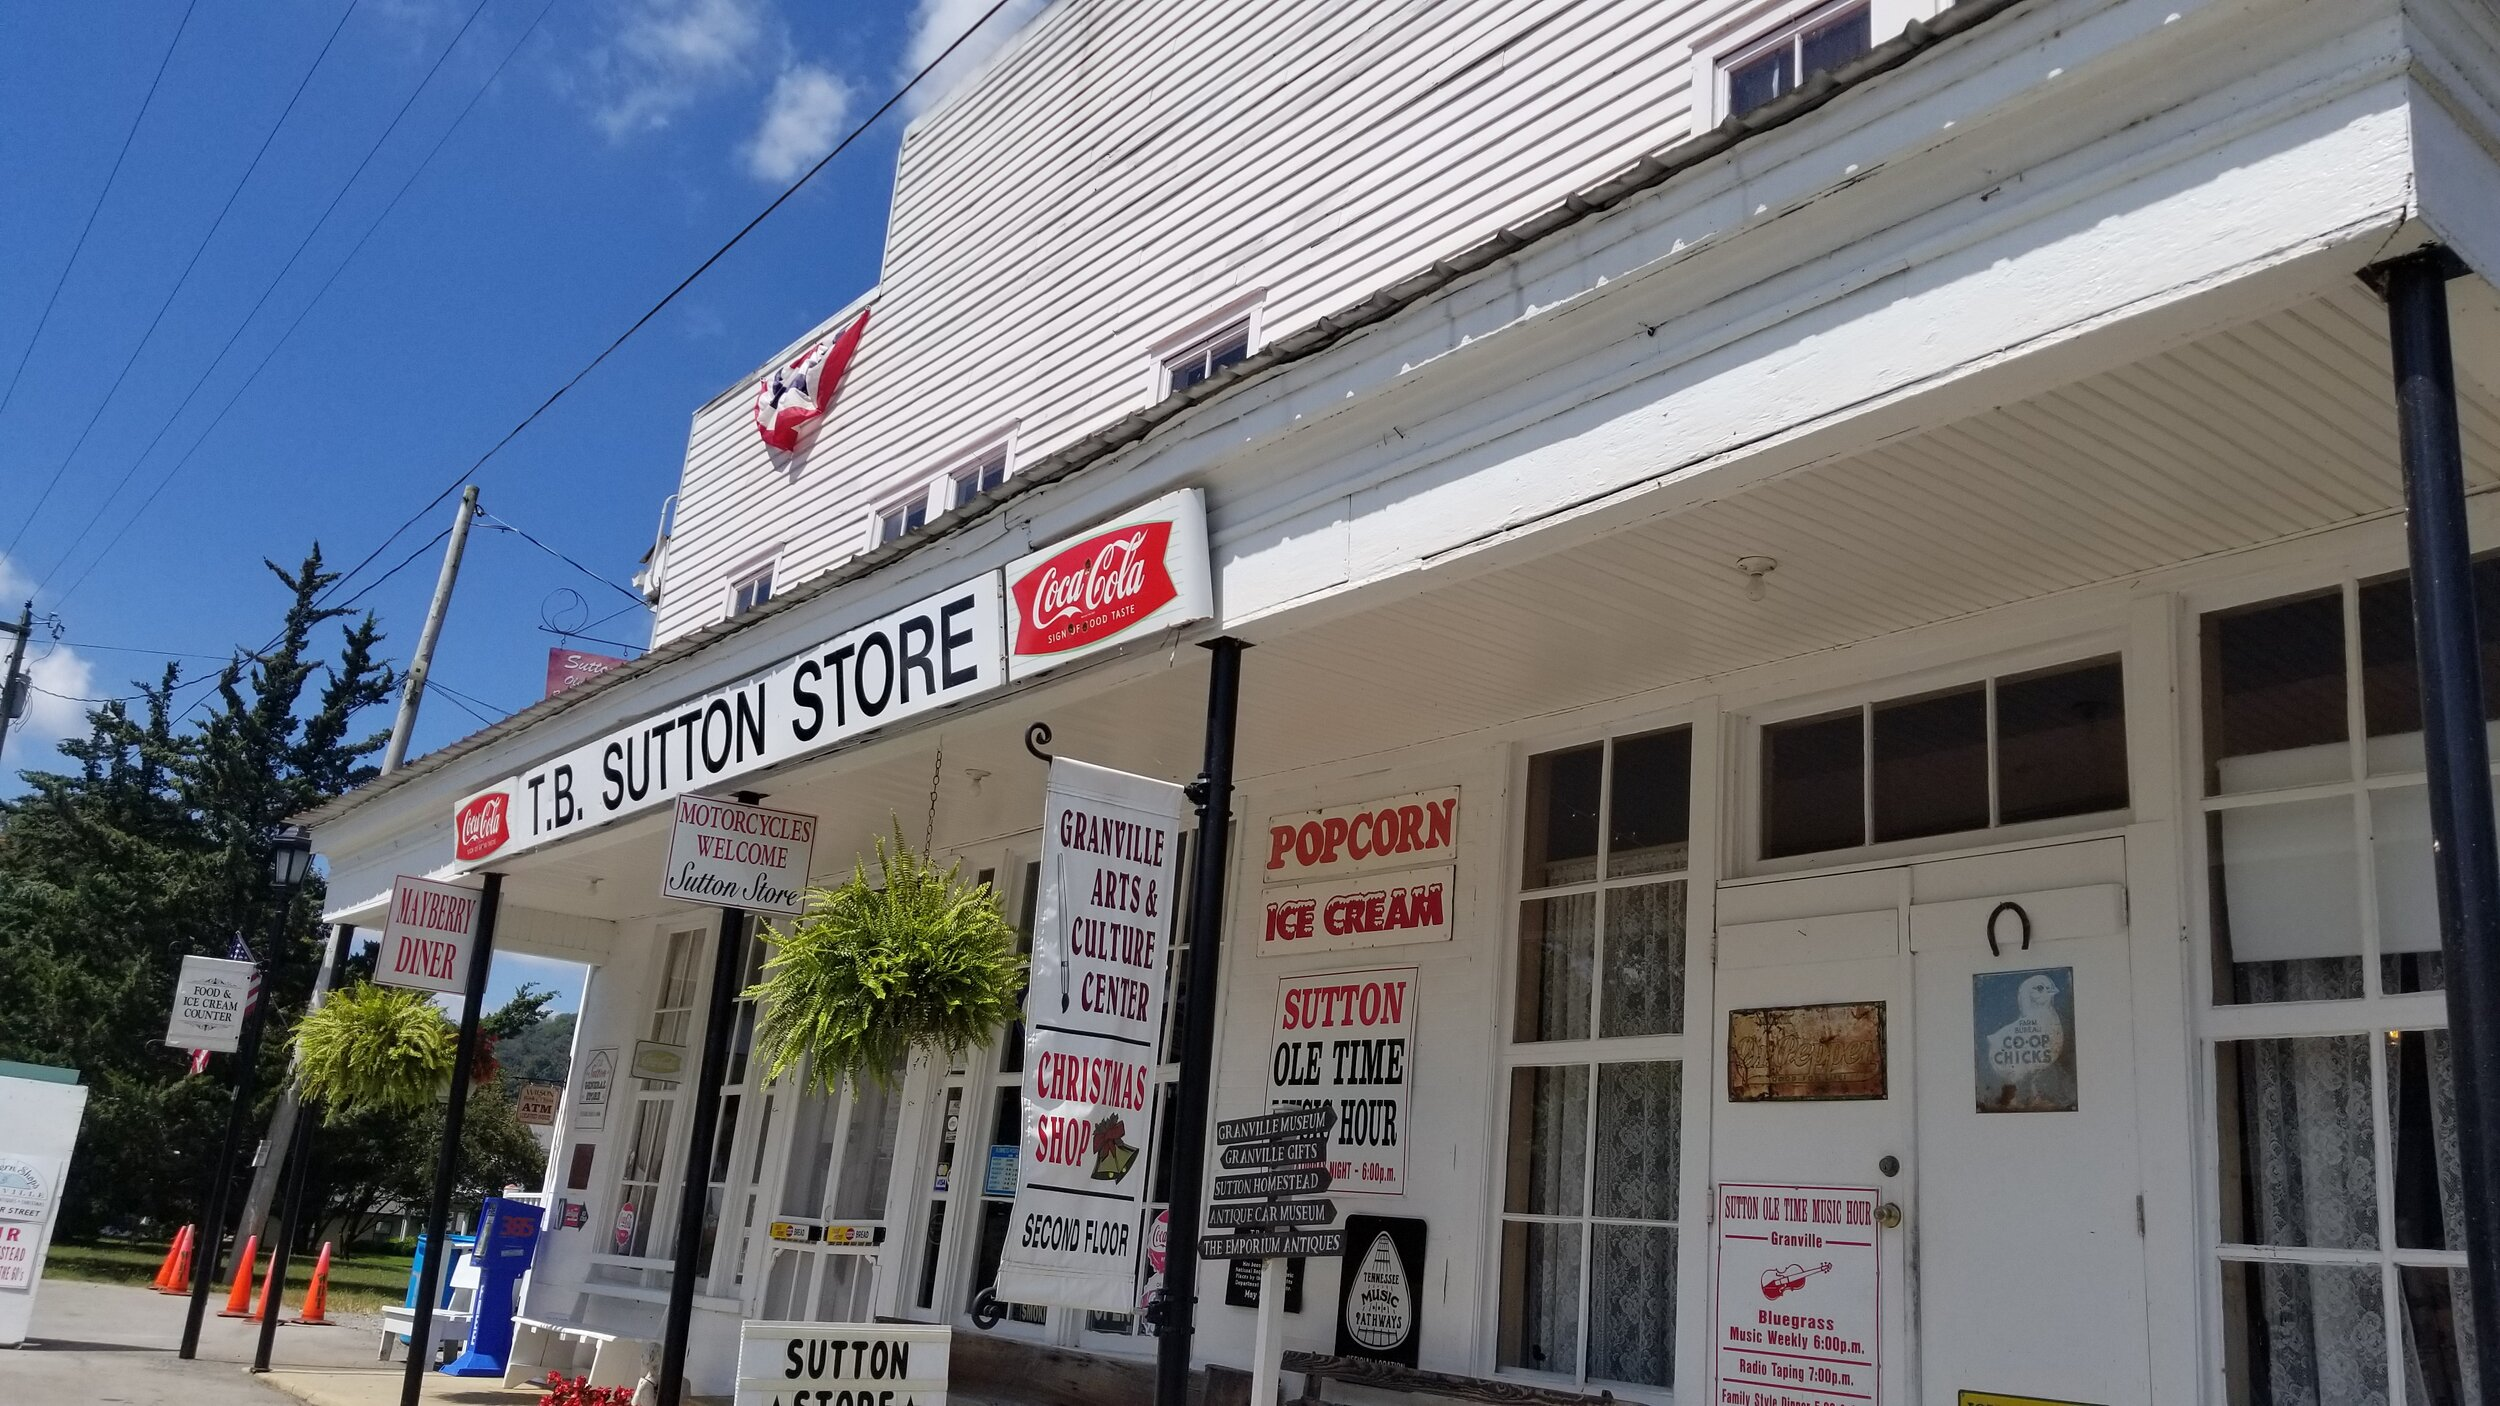 The T.B. Sutton Store in Granville, TN is the main attraction in this small town on the banks of the Cumberland River (Cordell Hull Lake).